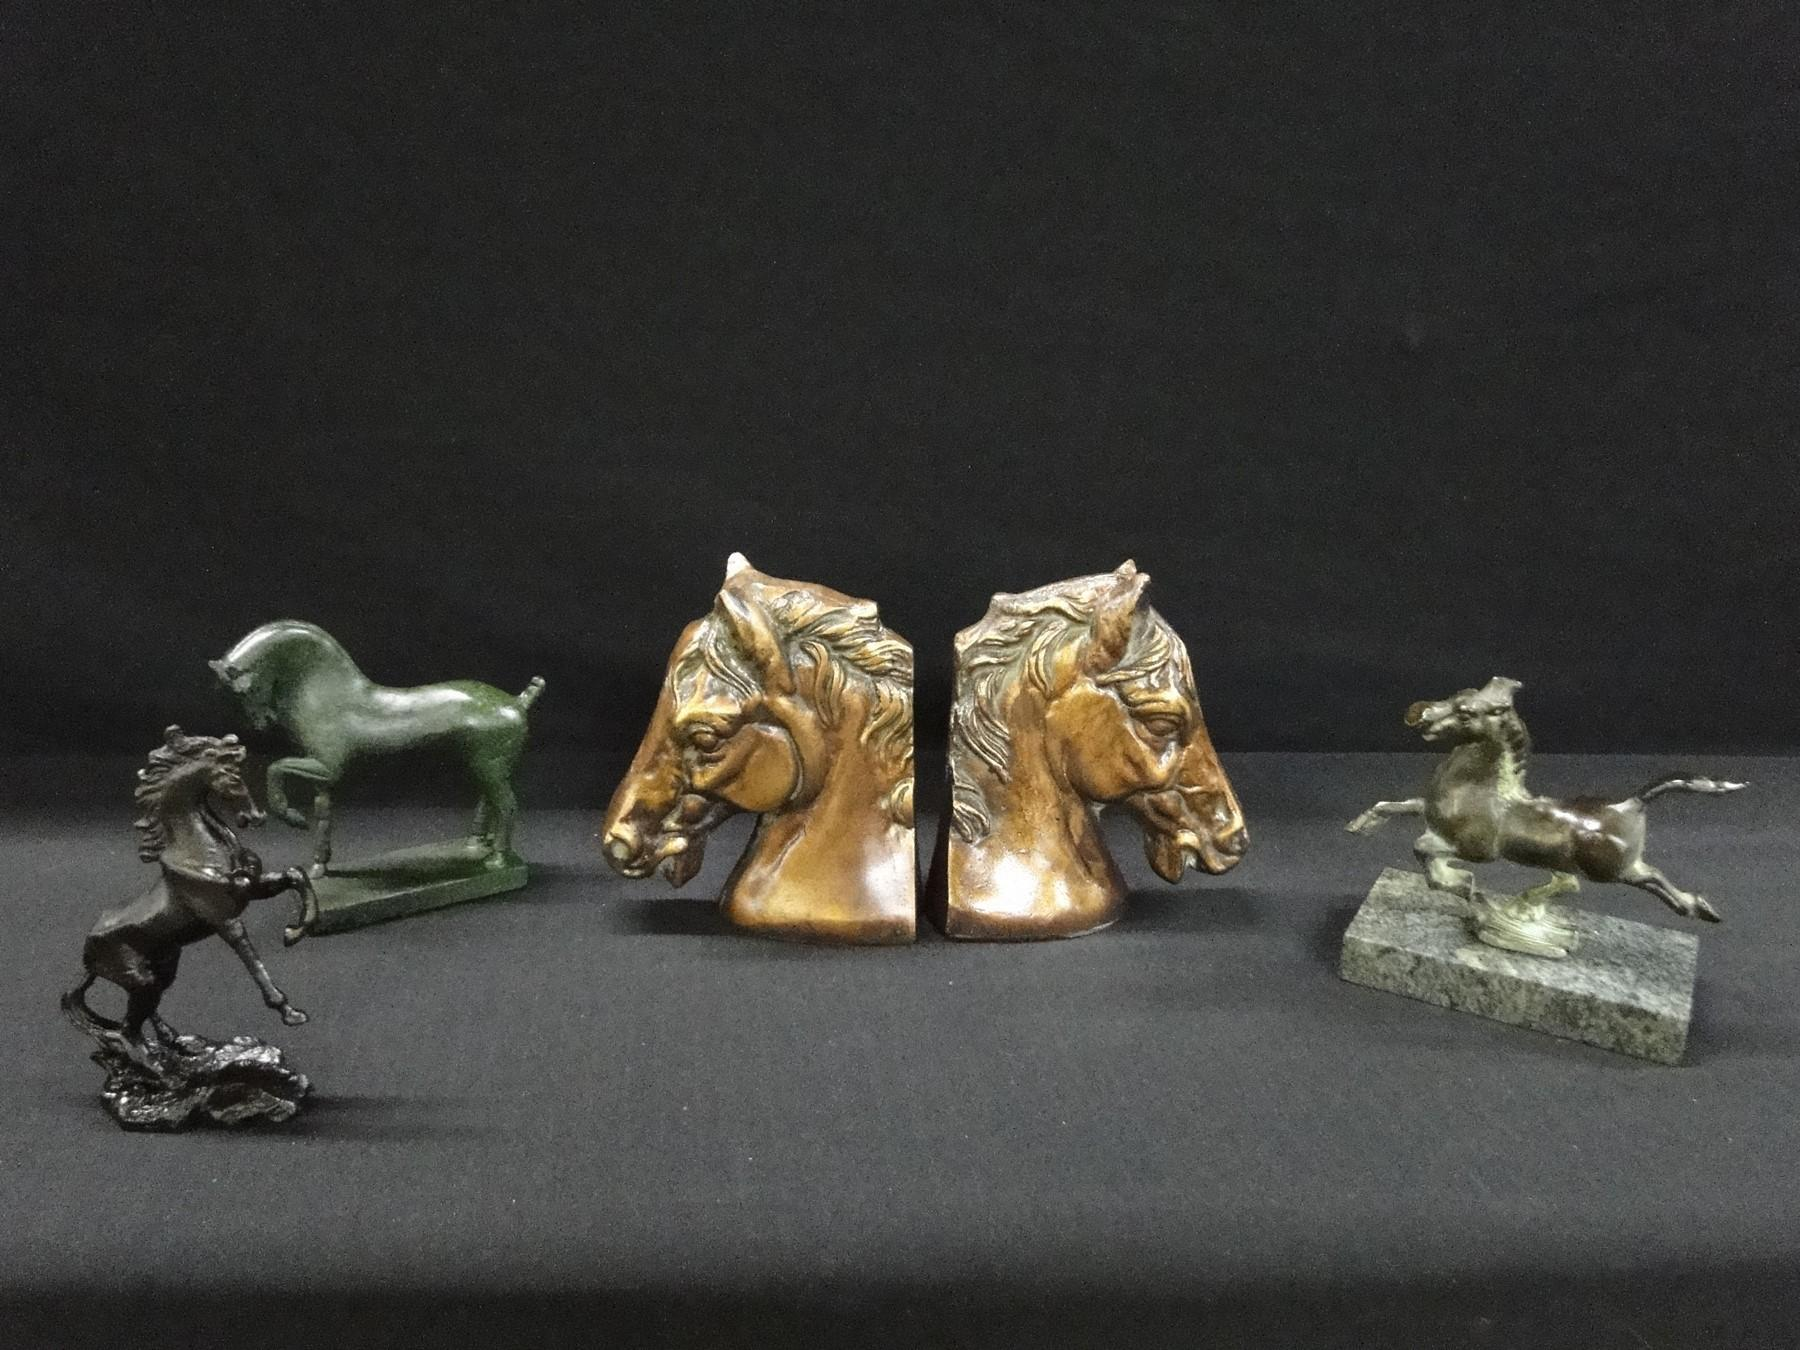 Lot of 4 Horses Bookends and 3 Statues